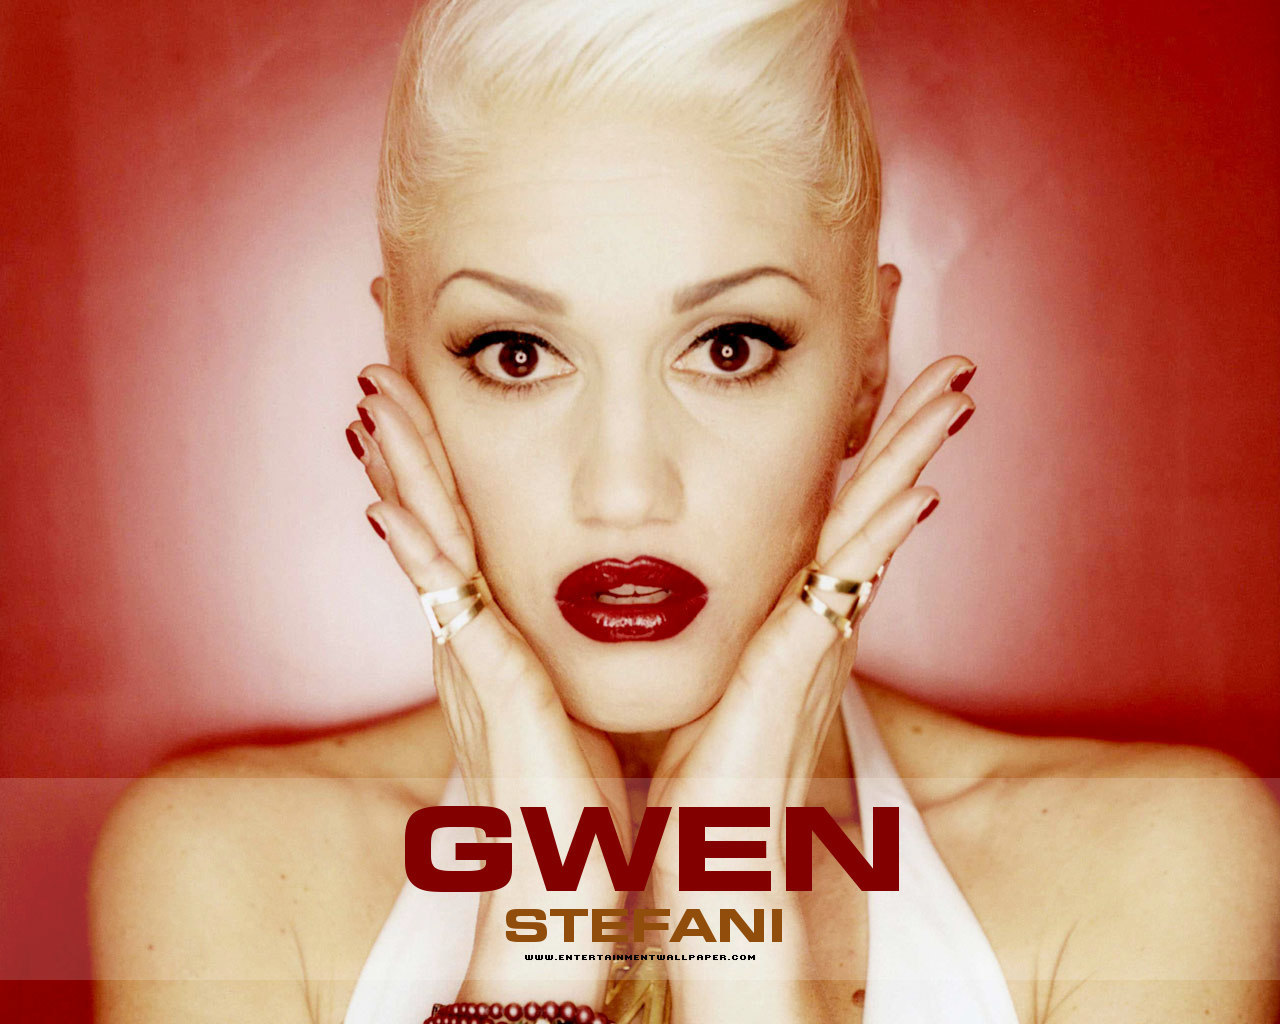 G-S-WAllpapers-gwen-stefani-10806917-1280-1024.jpg